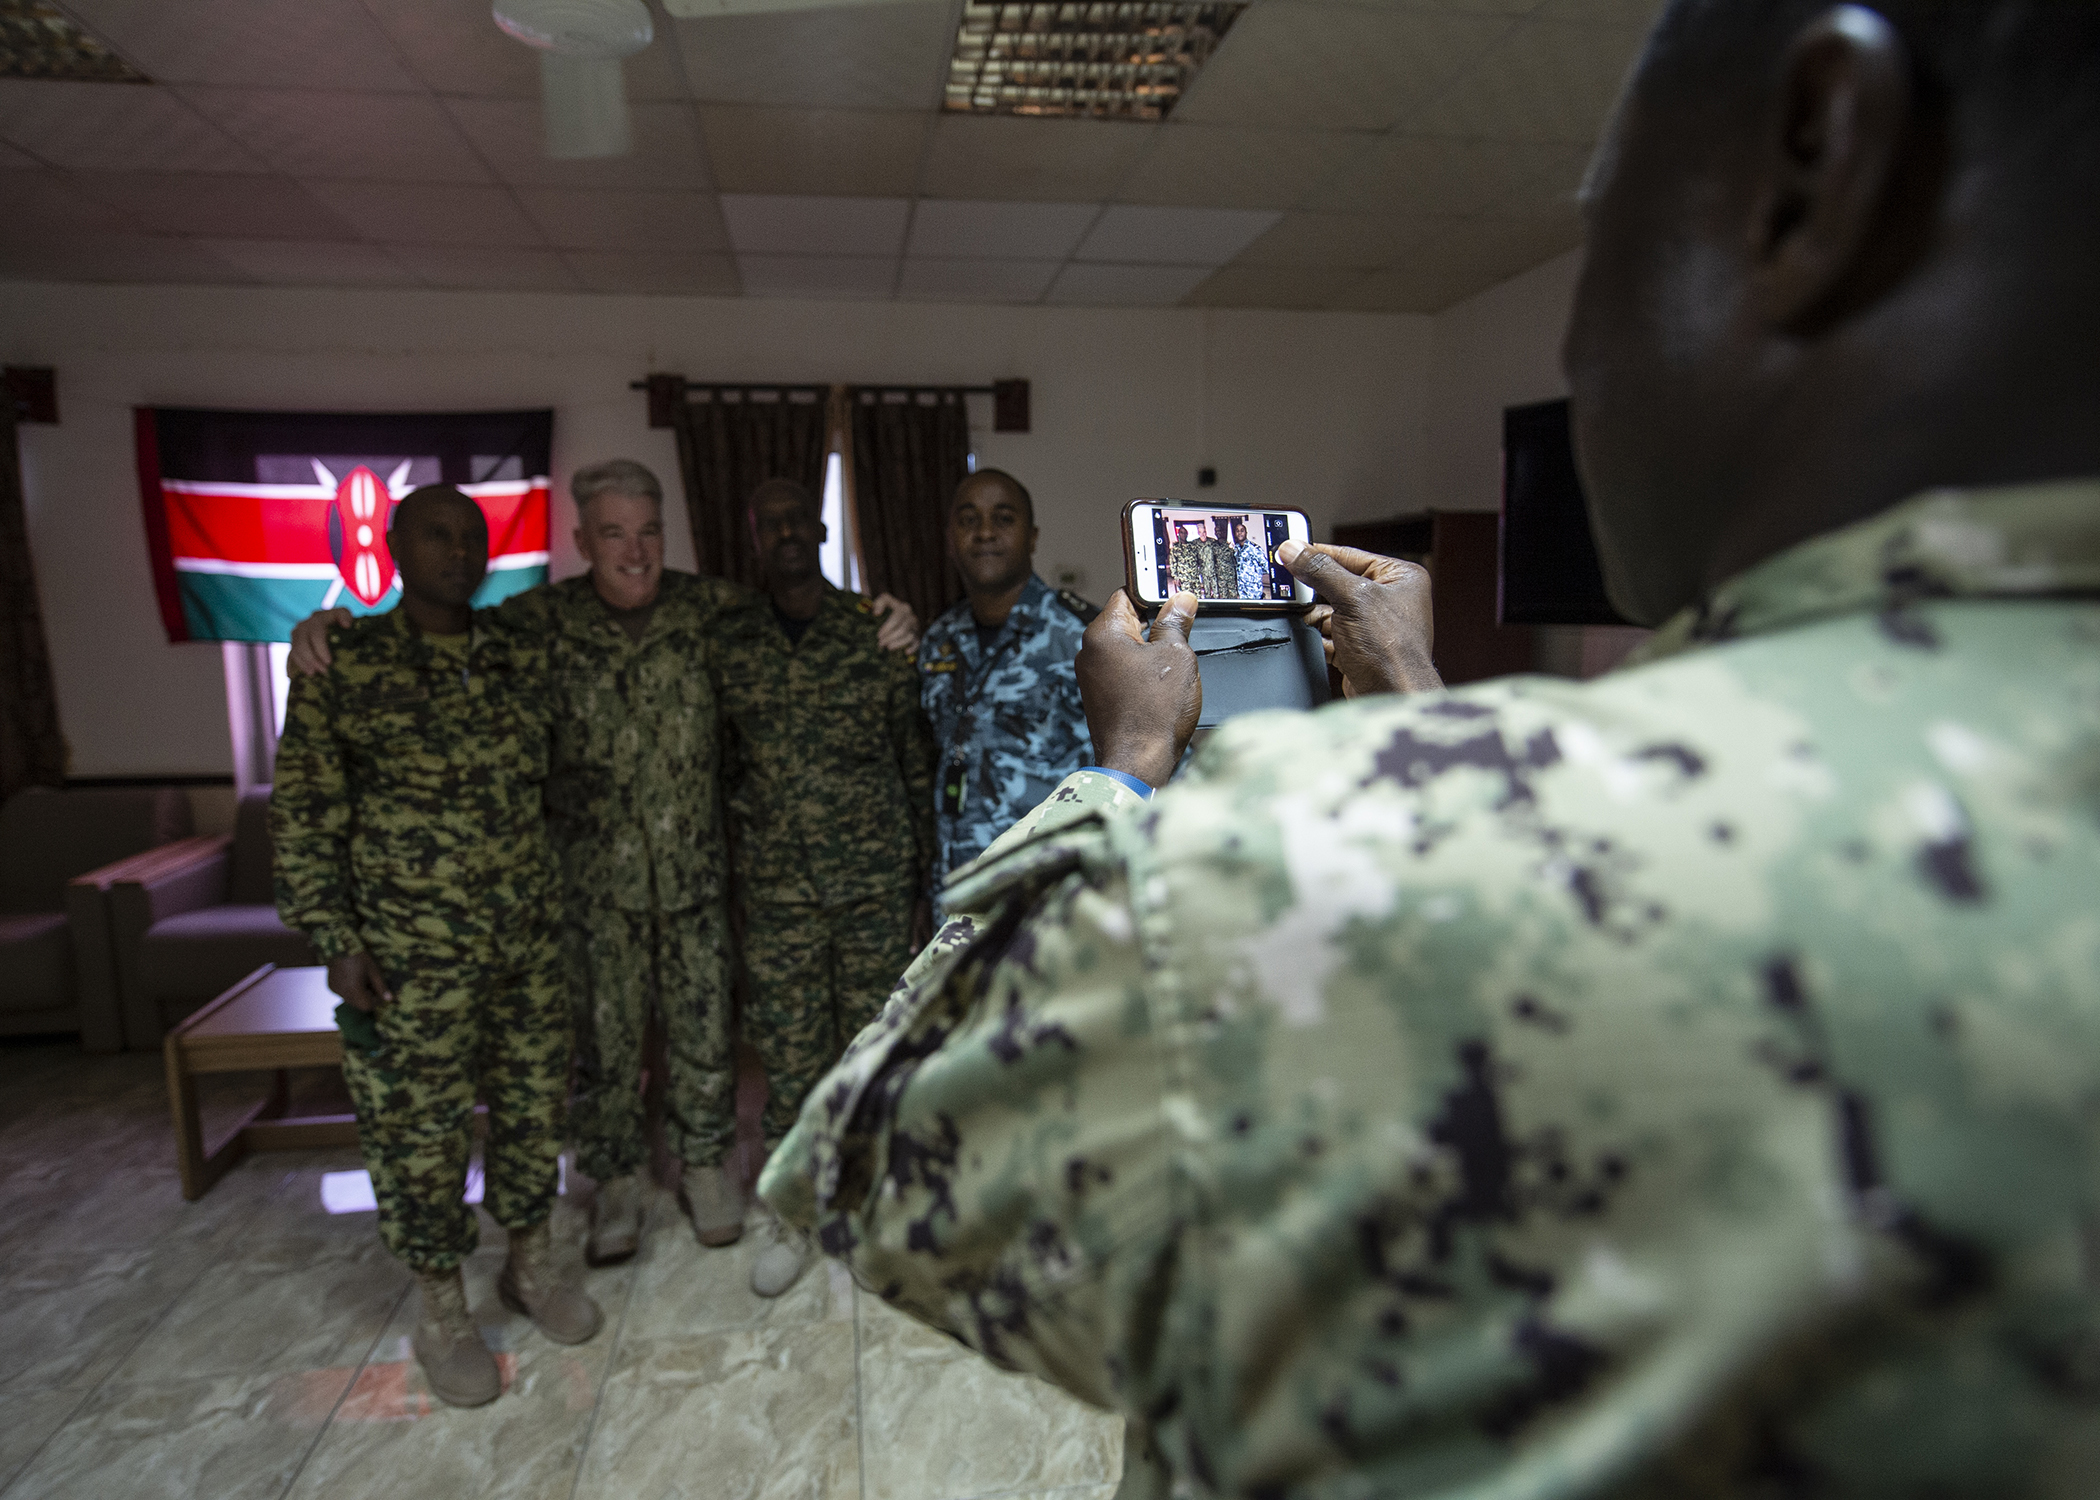 U.S. Navy Capt. Robert Carpenter, middle left, the command chaplain for Combined Joint Task Force-Horn of Africa (CJTF-HOA), poses for a photo with multinational military partners while attending a cultural exchange event at Camp Lemonnier, Djibouti, March 27, 2019. CJTF-HOA holds monthly exchange events with multinational military partners affiliated with Camp Lemonnier to strengthen alliances and attract new partners in the combined joint military environment. (U.S. Air Force photo by Tech. Sgt. Shawn Nickel)